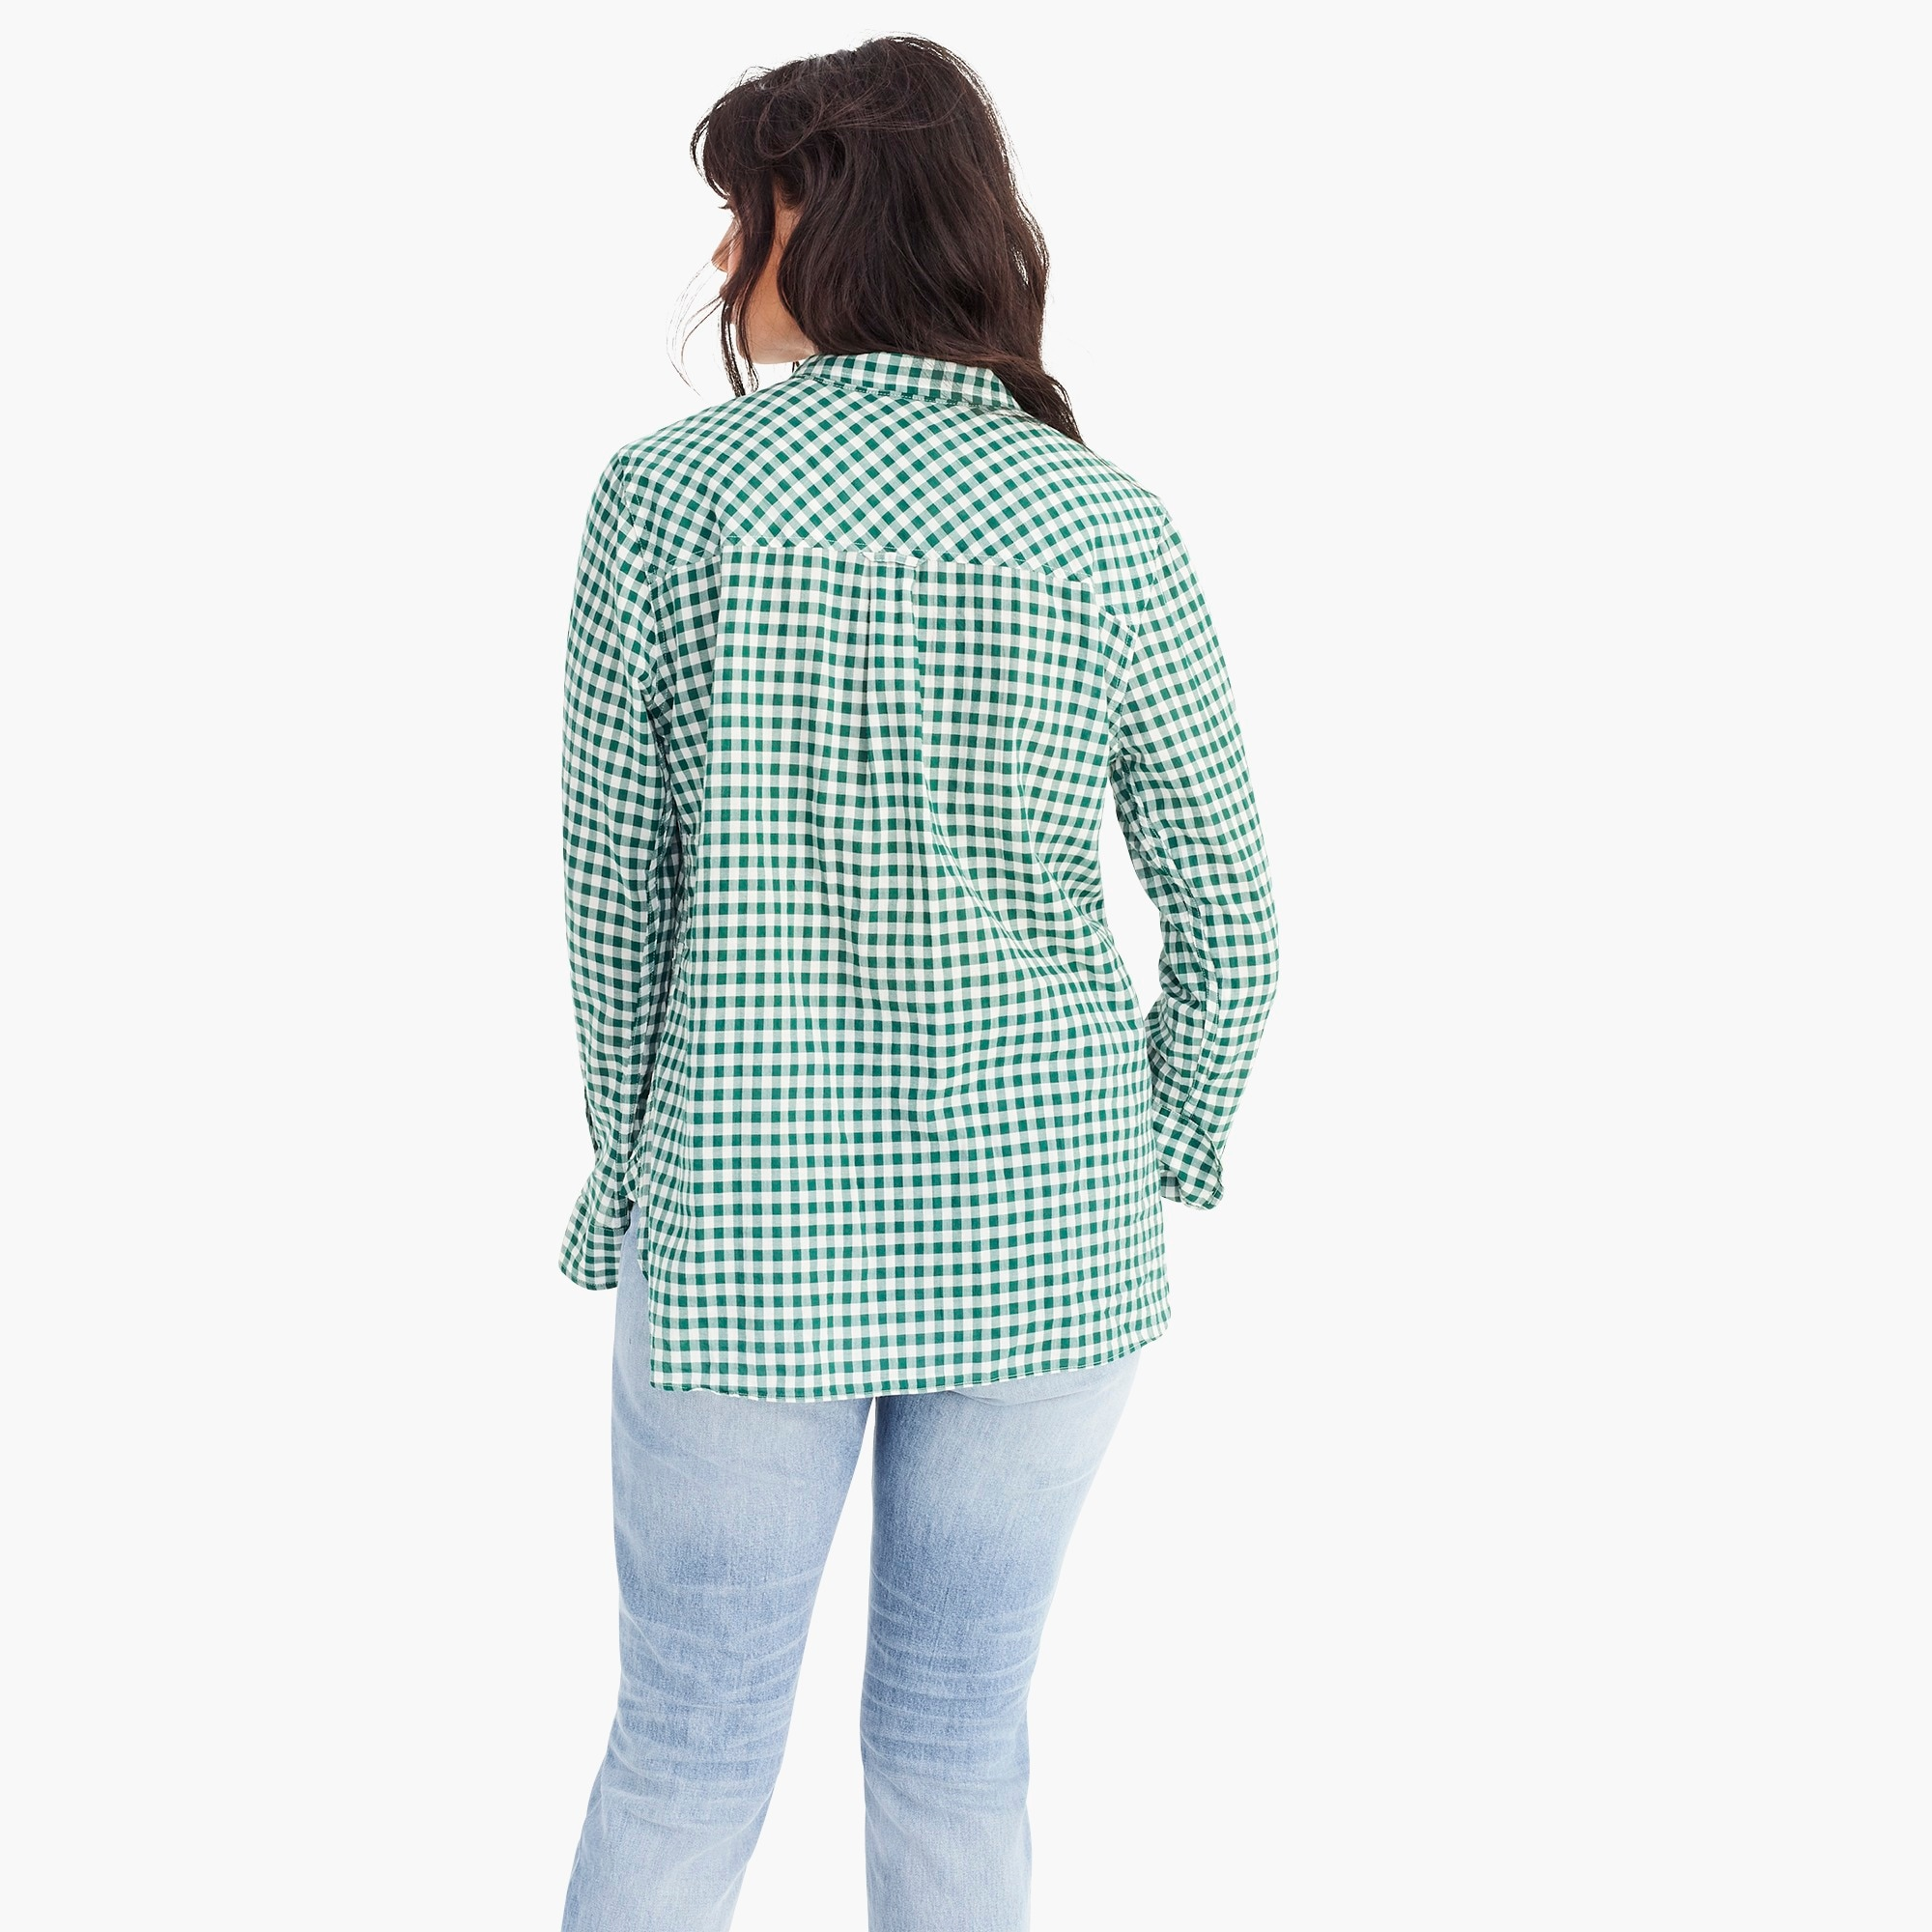 Image 5 for Classic-fit boy shirt in crinkle gingham